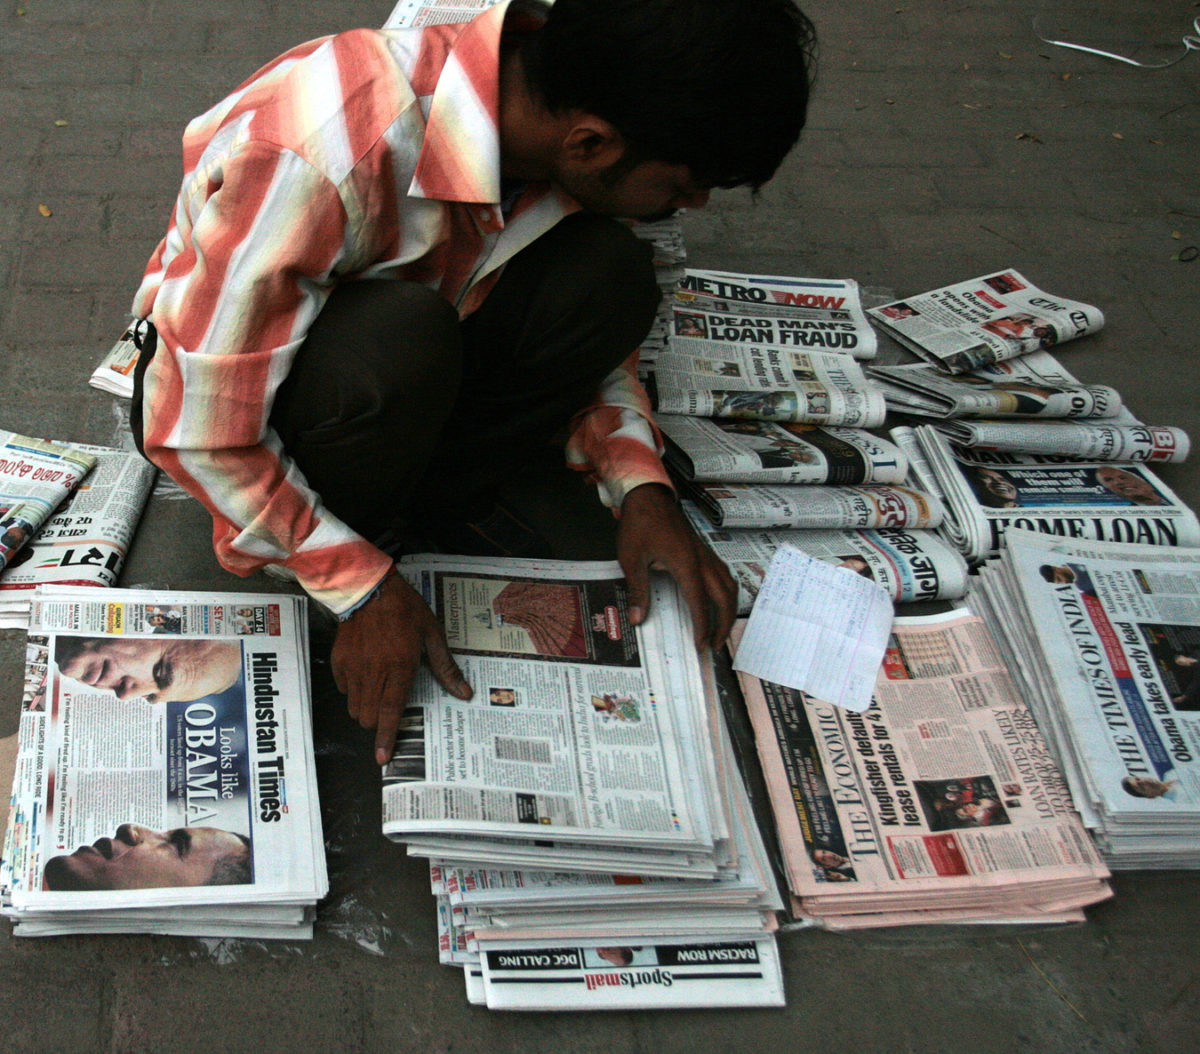 Why I worry about India's increasingly fragile media